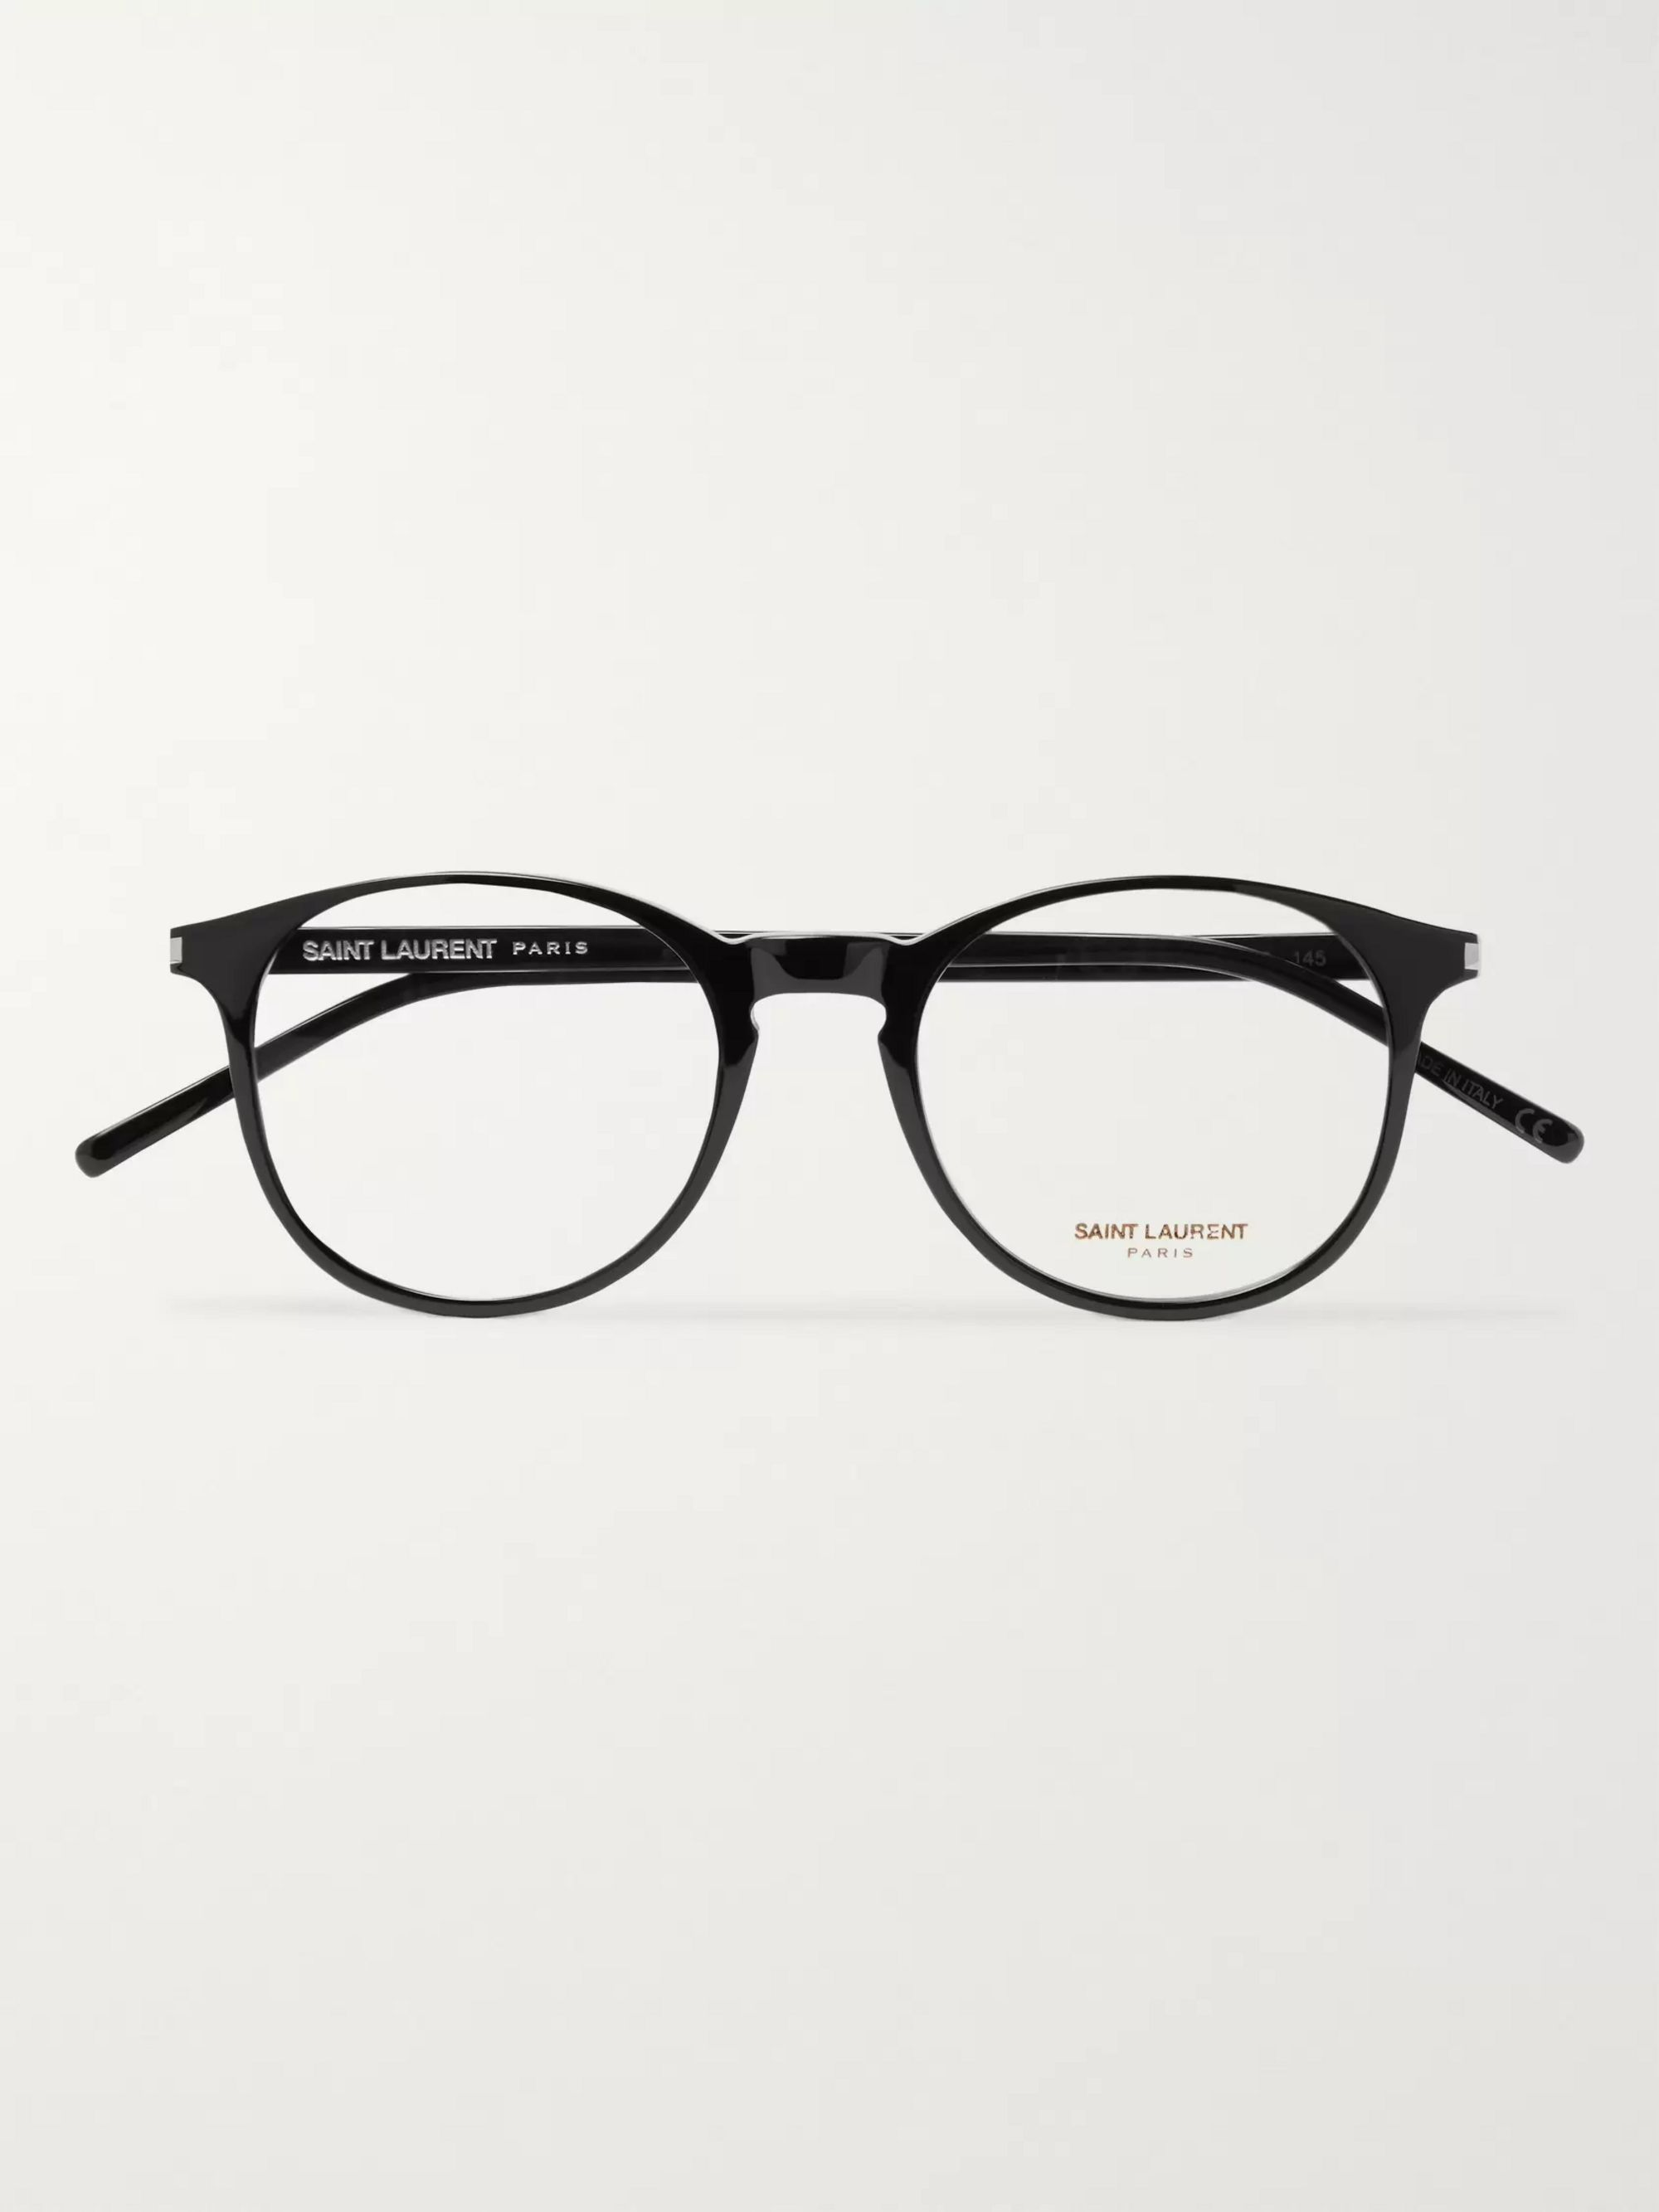 SAINT LAURENT Round-Frame Acetate Optical Glasses